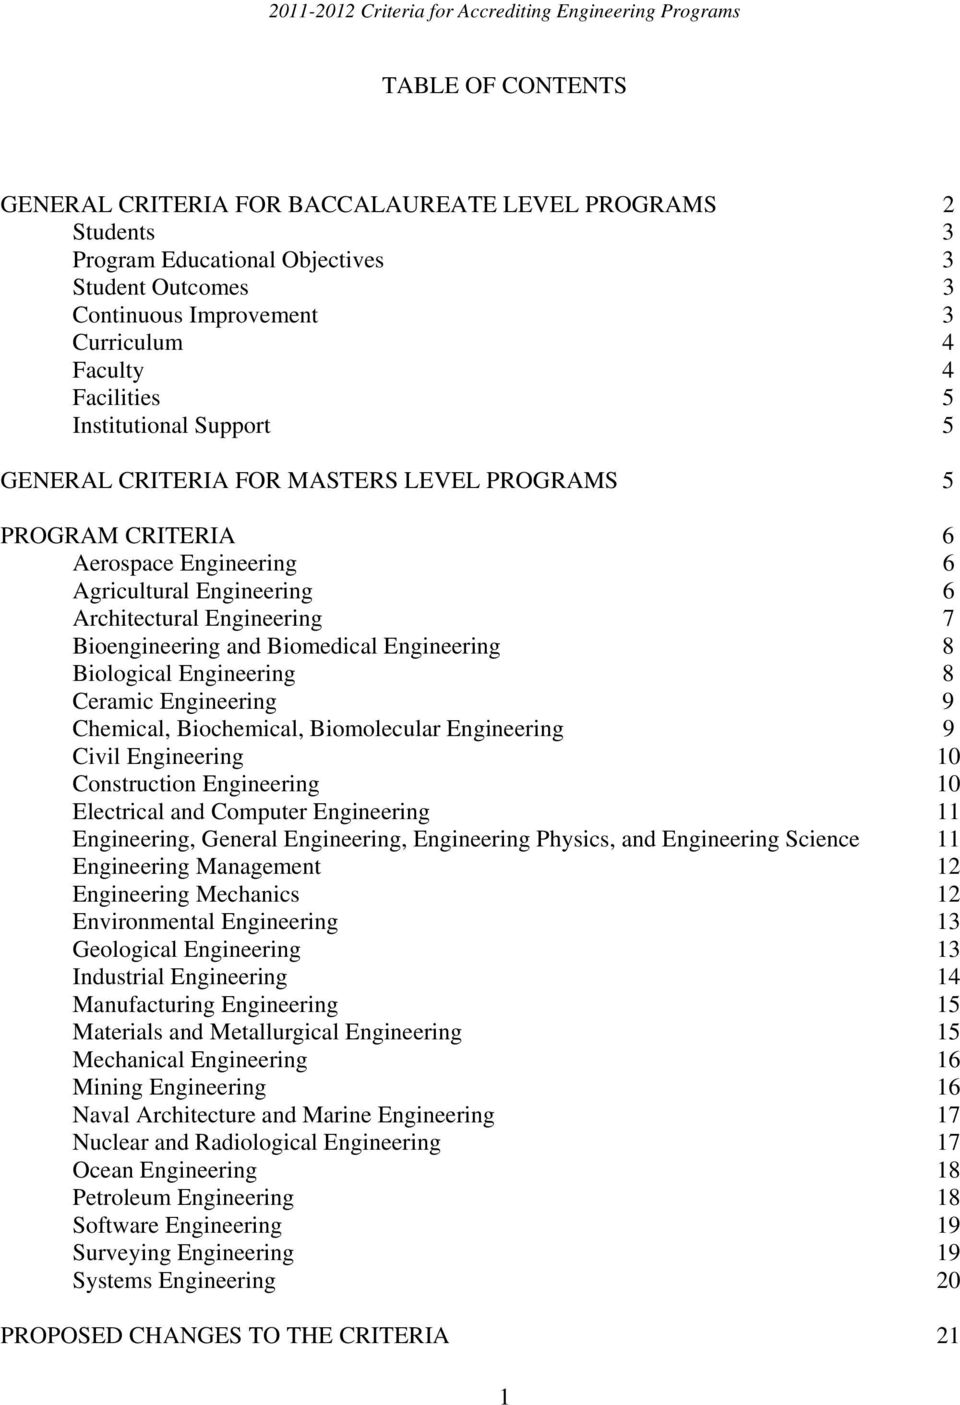 Engineering 8 Biological Engineering 8 Ceramic Engineering 9 Chemical, Biochemical, Biomolecular Engineering 9 Civil Engineering 10 Construction Engineering 10 Electrical and Computer Engineering 11